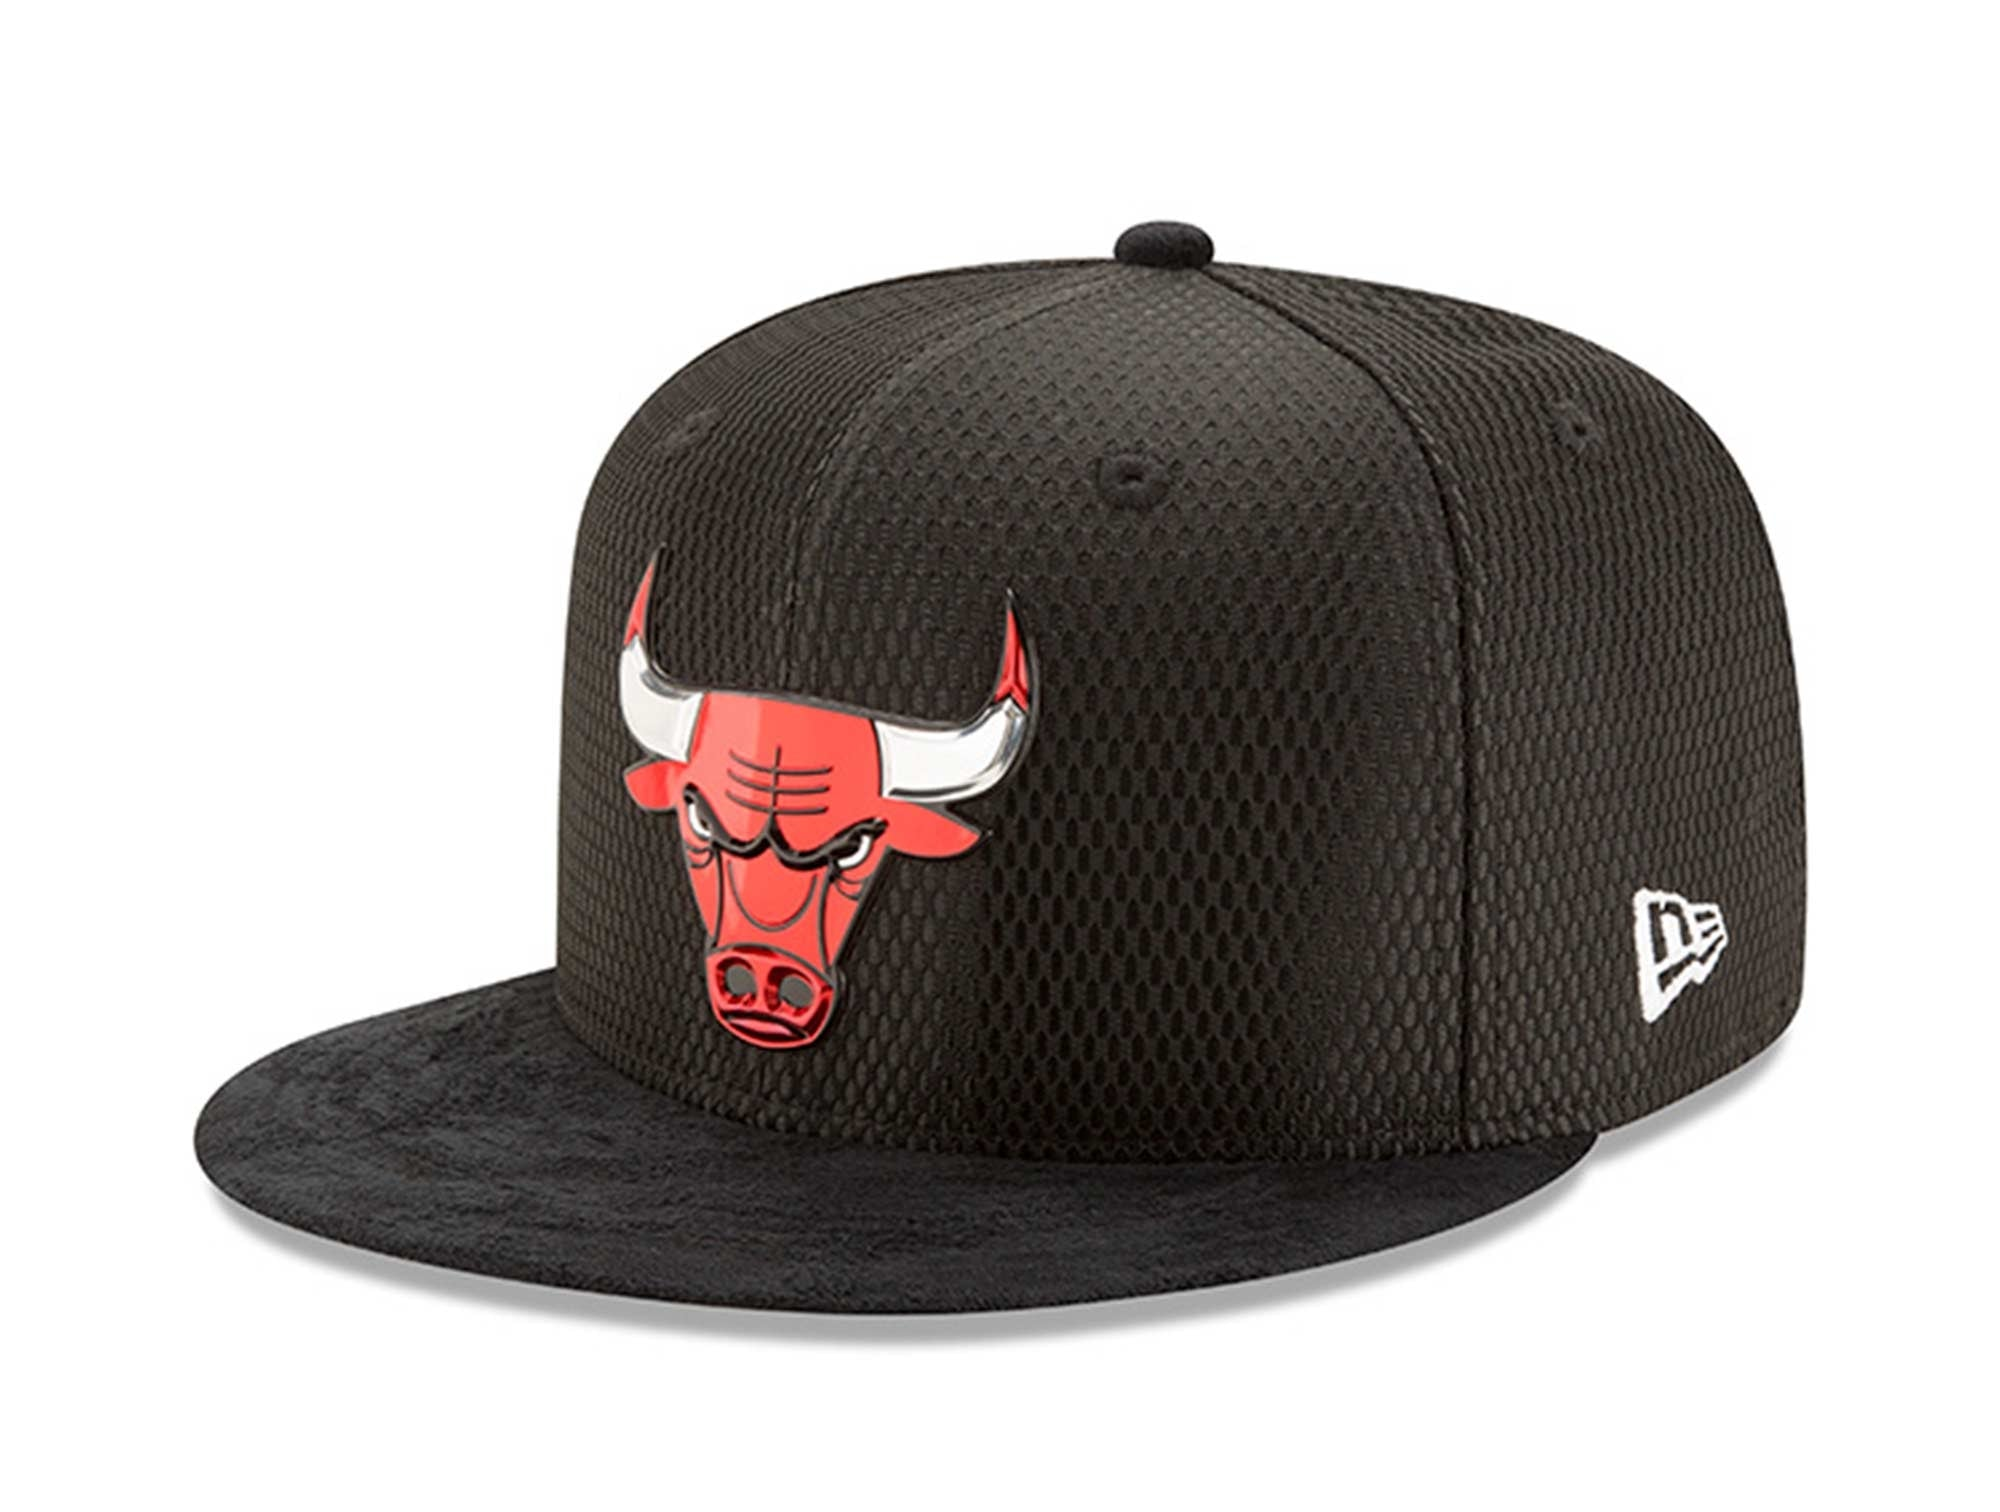 Jockey New Era Nba Chicago Bulls 5950 Hombre